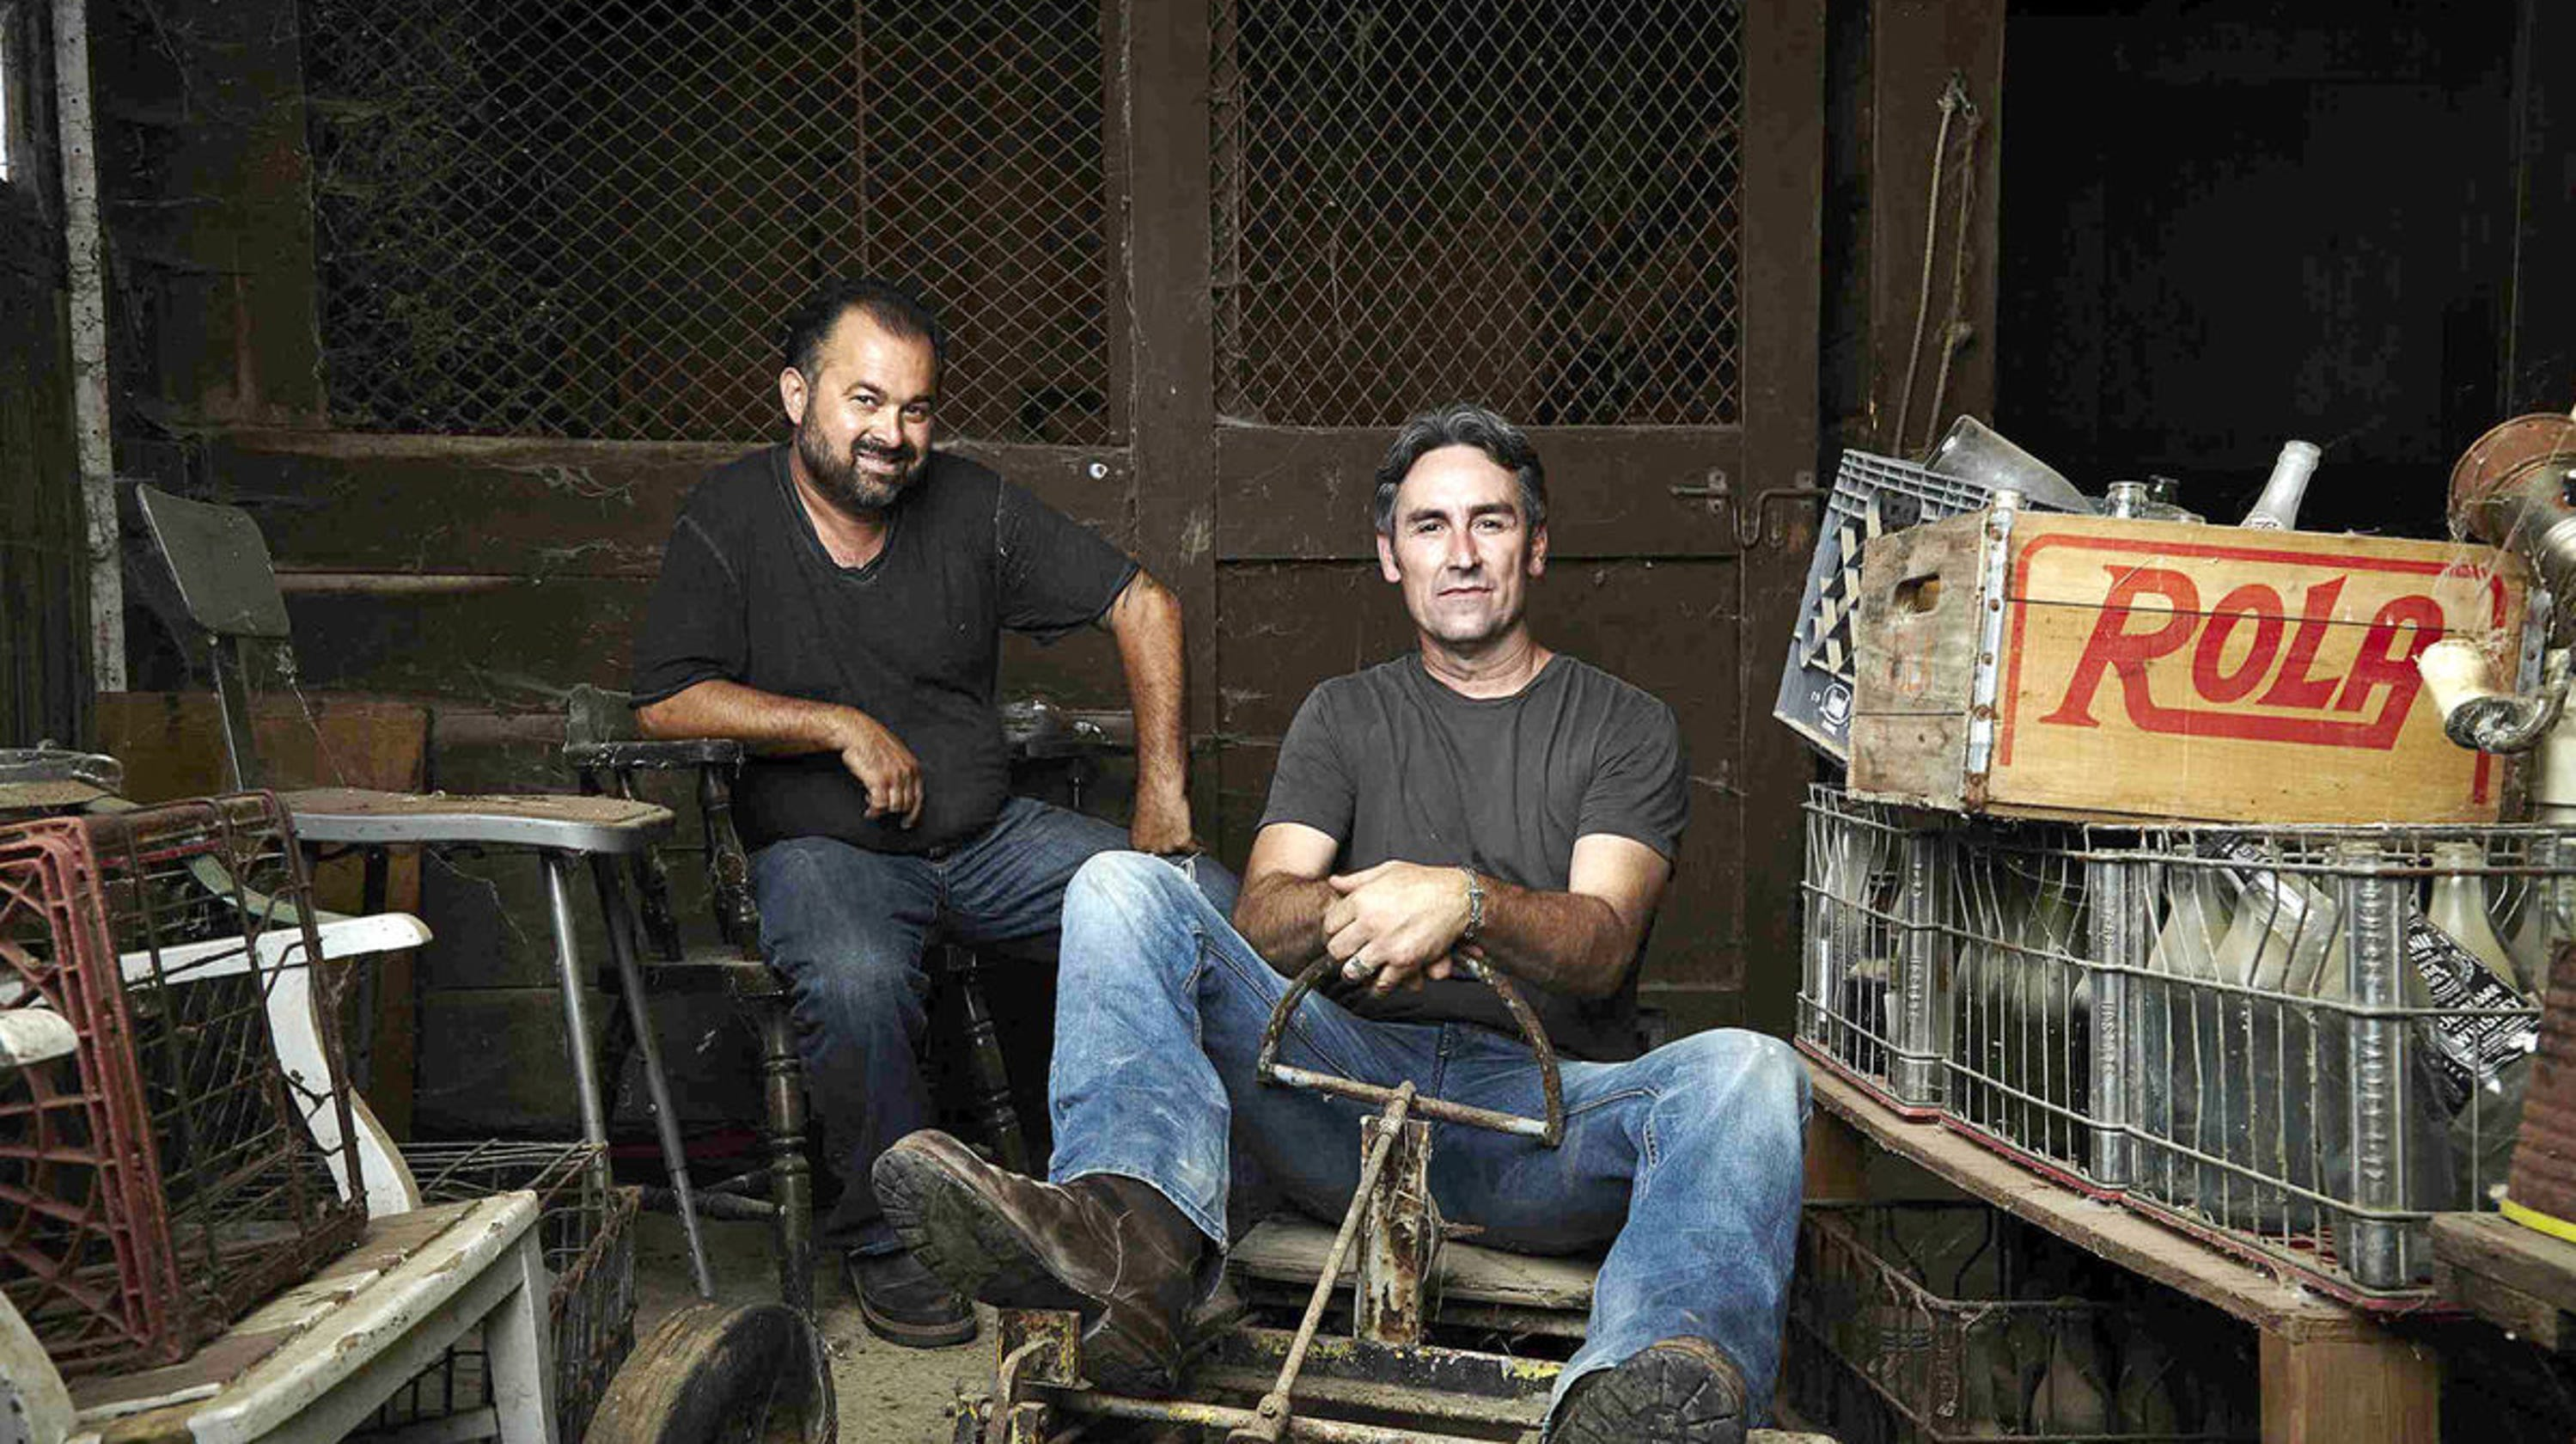 American Pickers New Season 2020 History channel series 'American Pickers' to film in NY in May